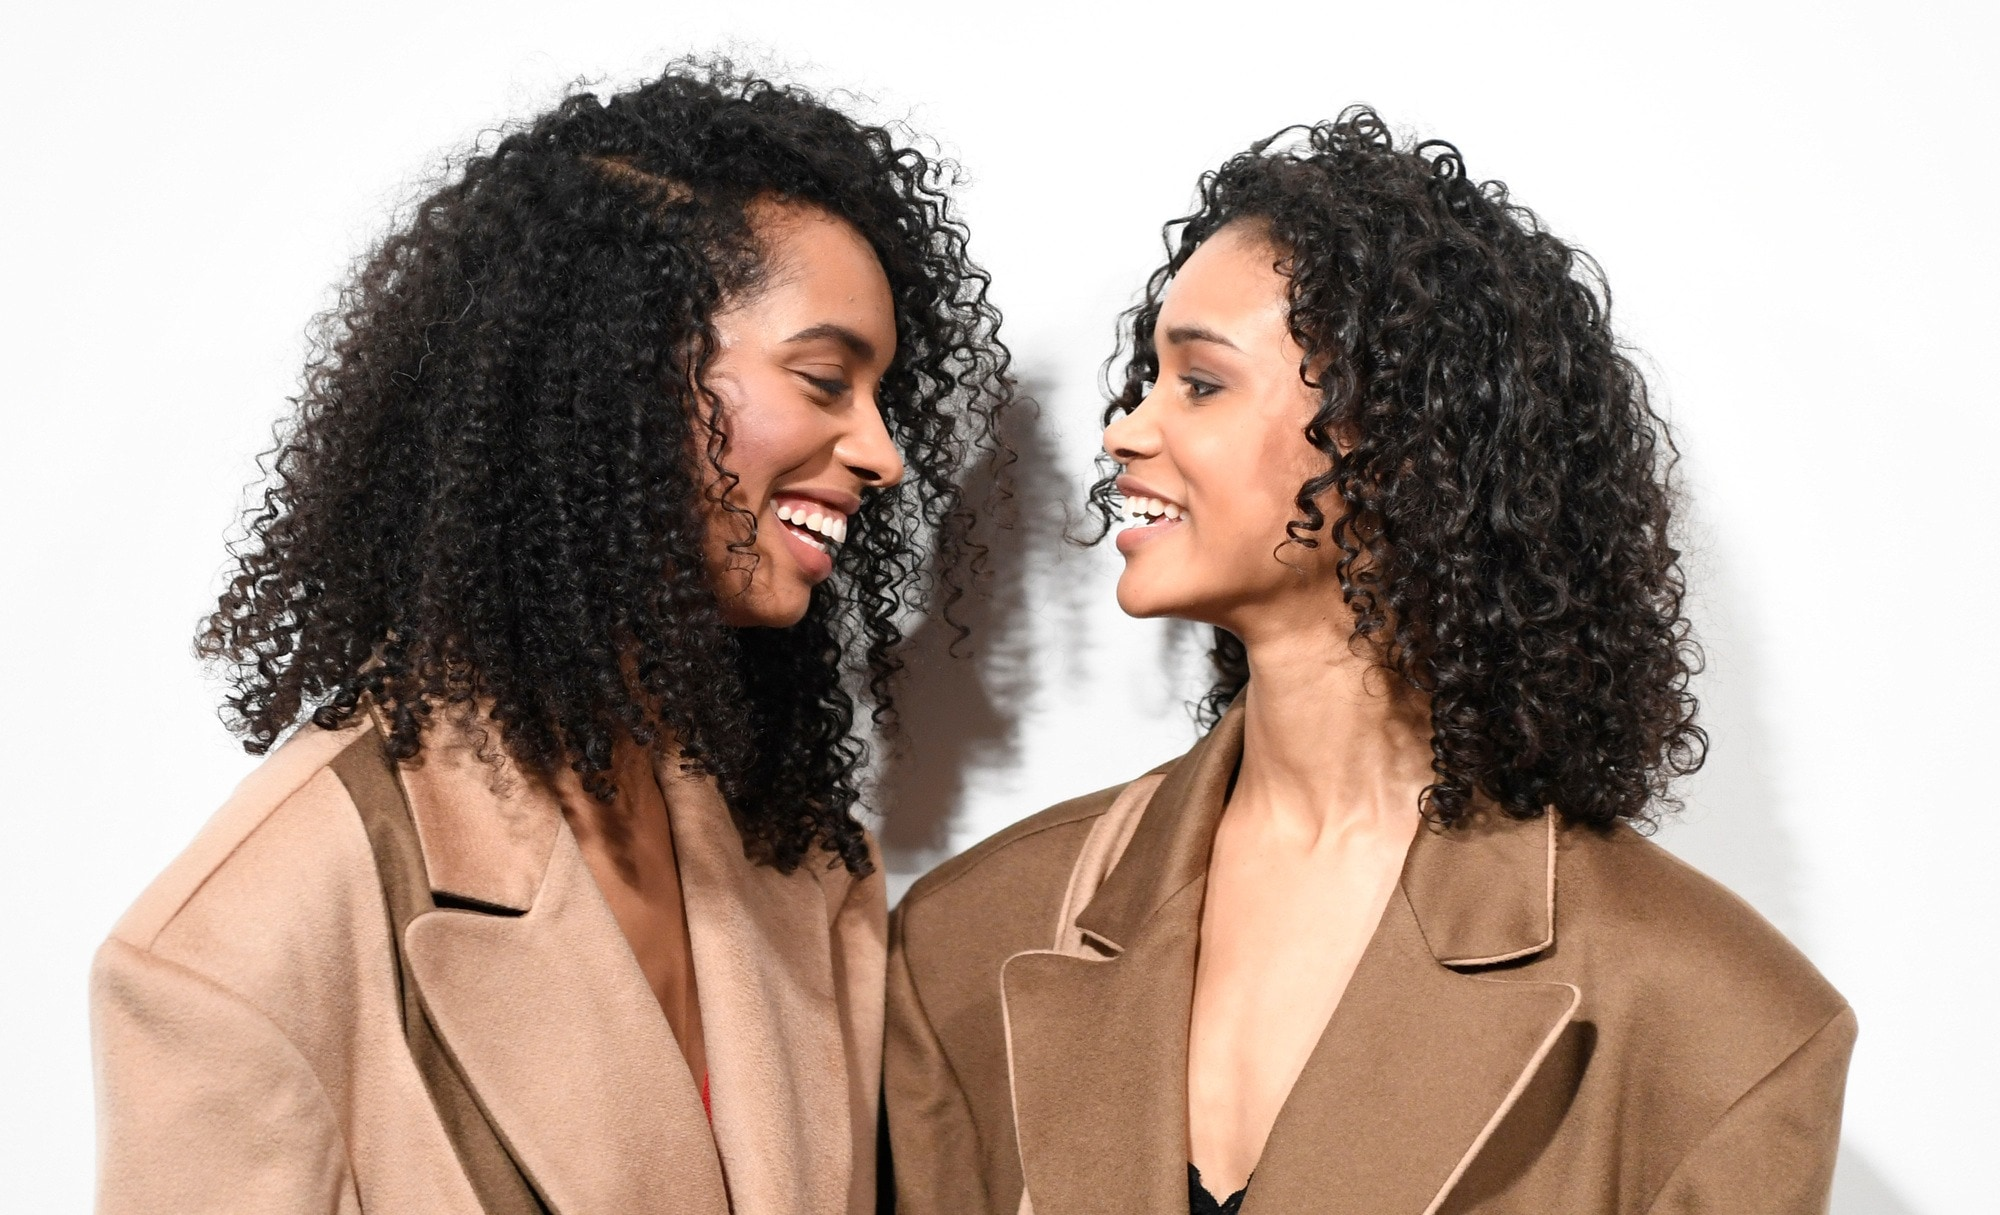 best shampoo for curly hair: close up shot of two women with curly hair, posing backstage at a fashion show